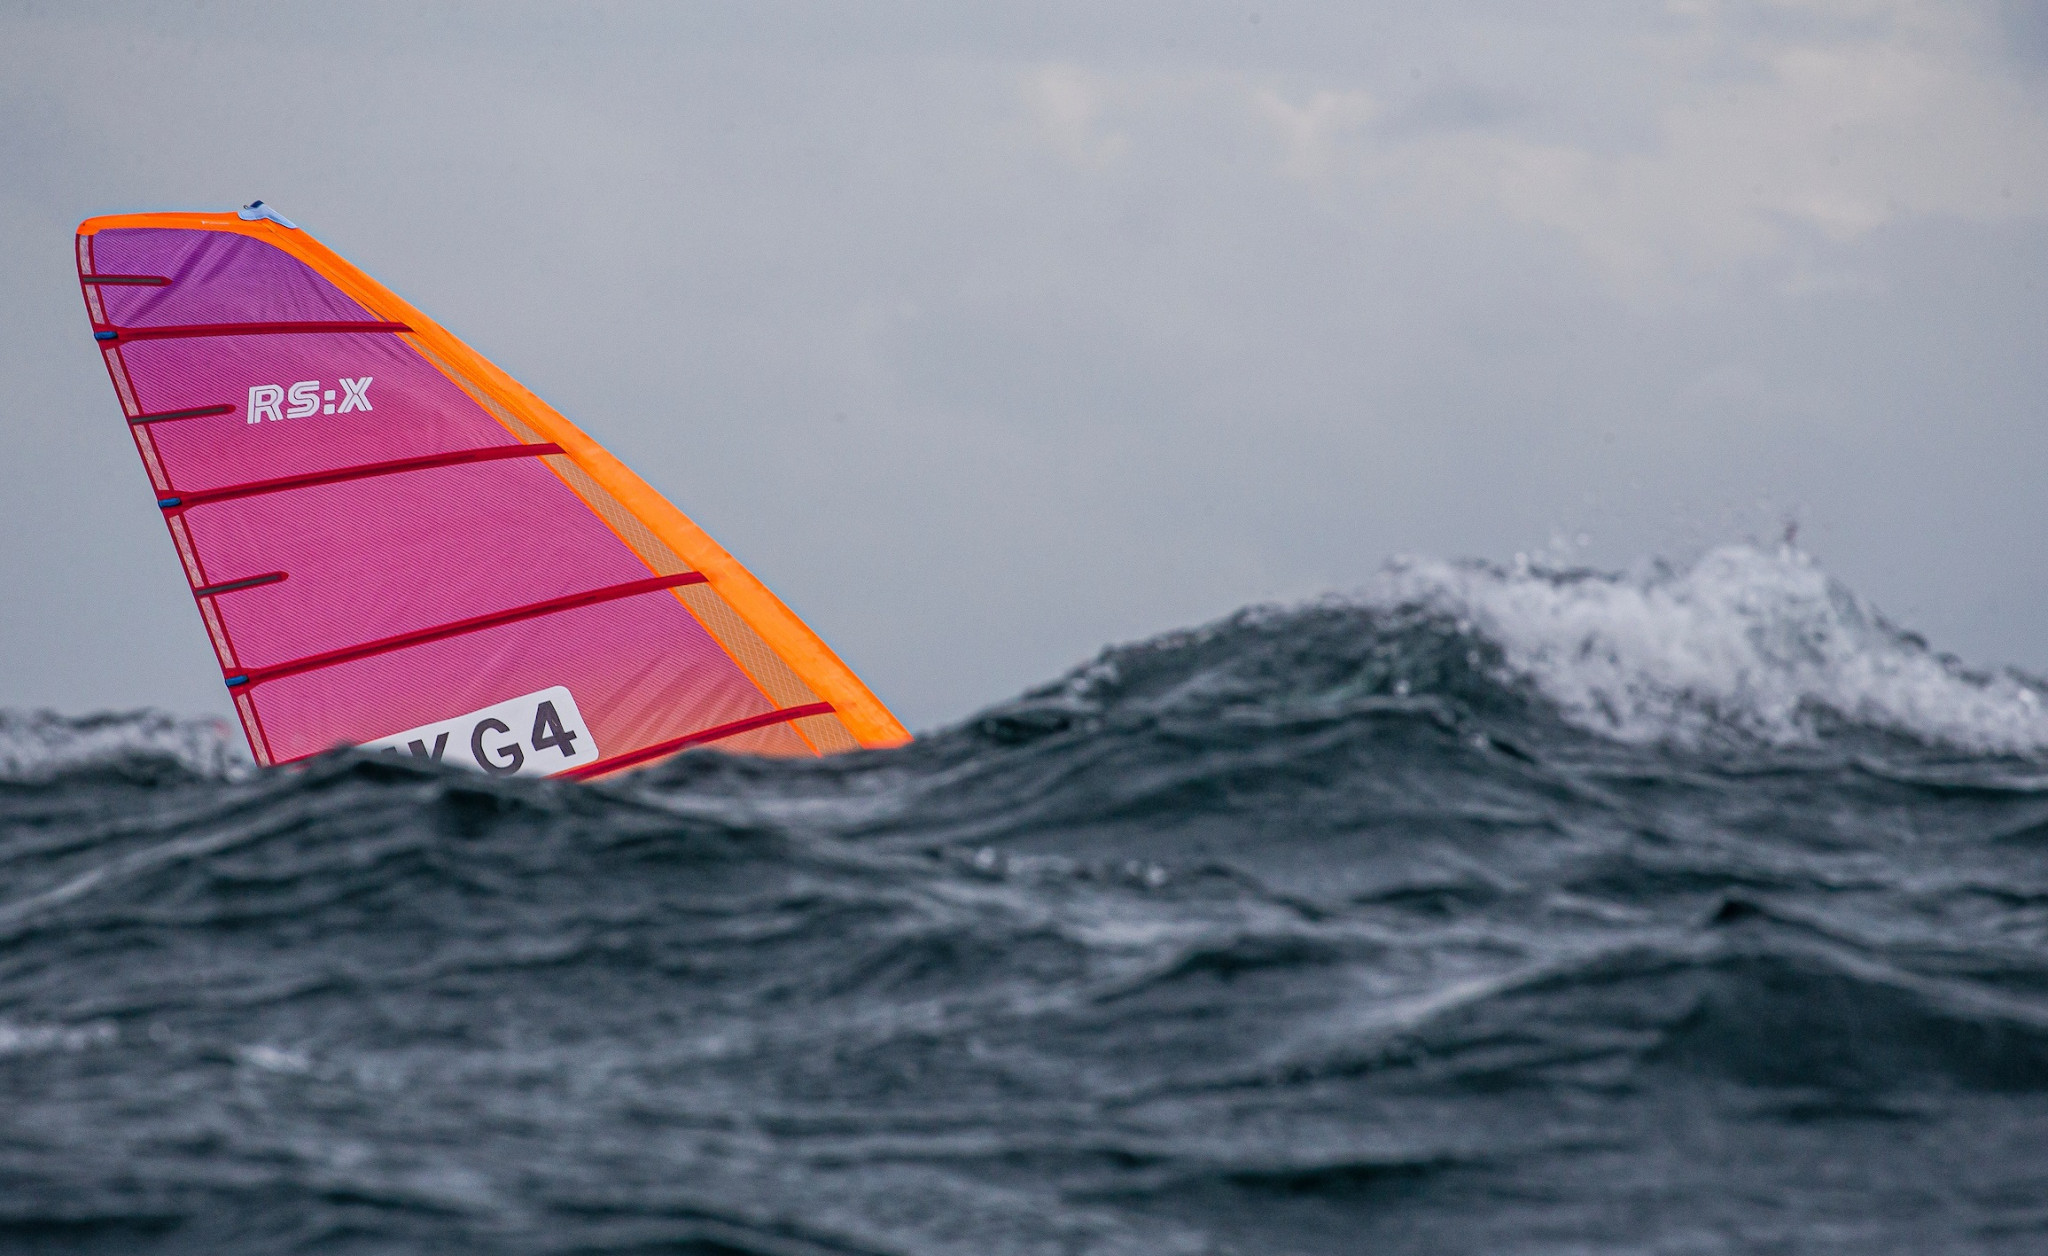 RS:X windsurfing action was possible in the challenging environment ©World Sailing